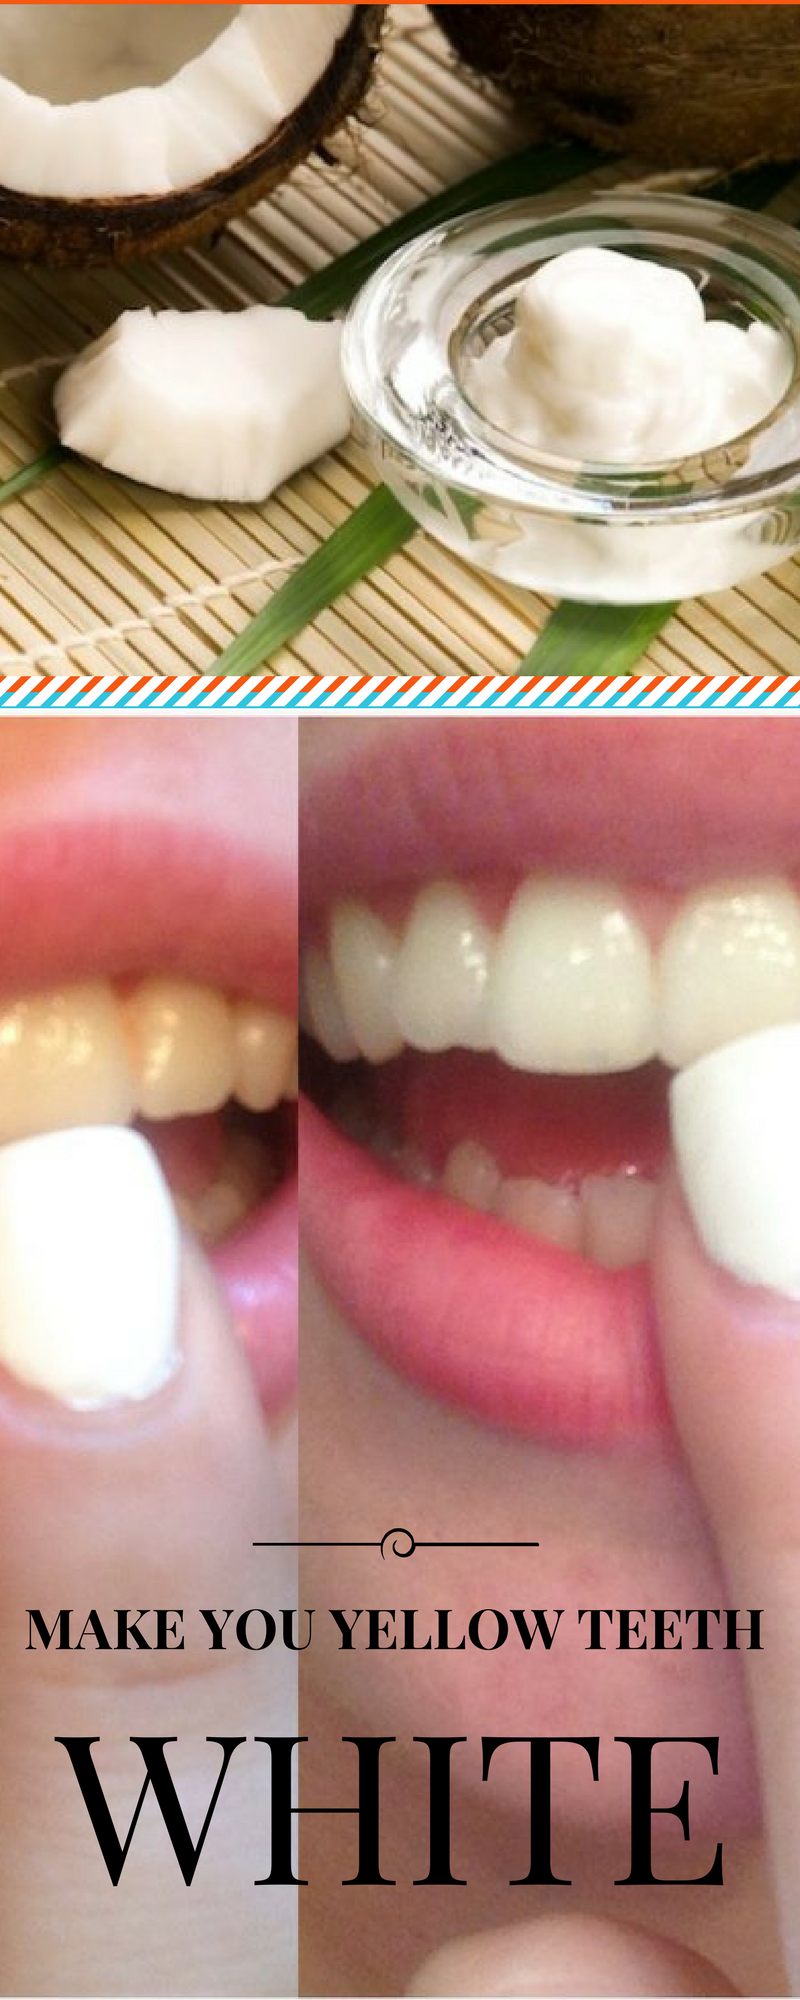 Now you can make your yellow teeth white in only minutes